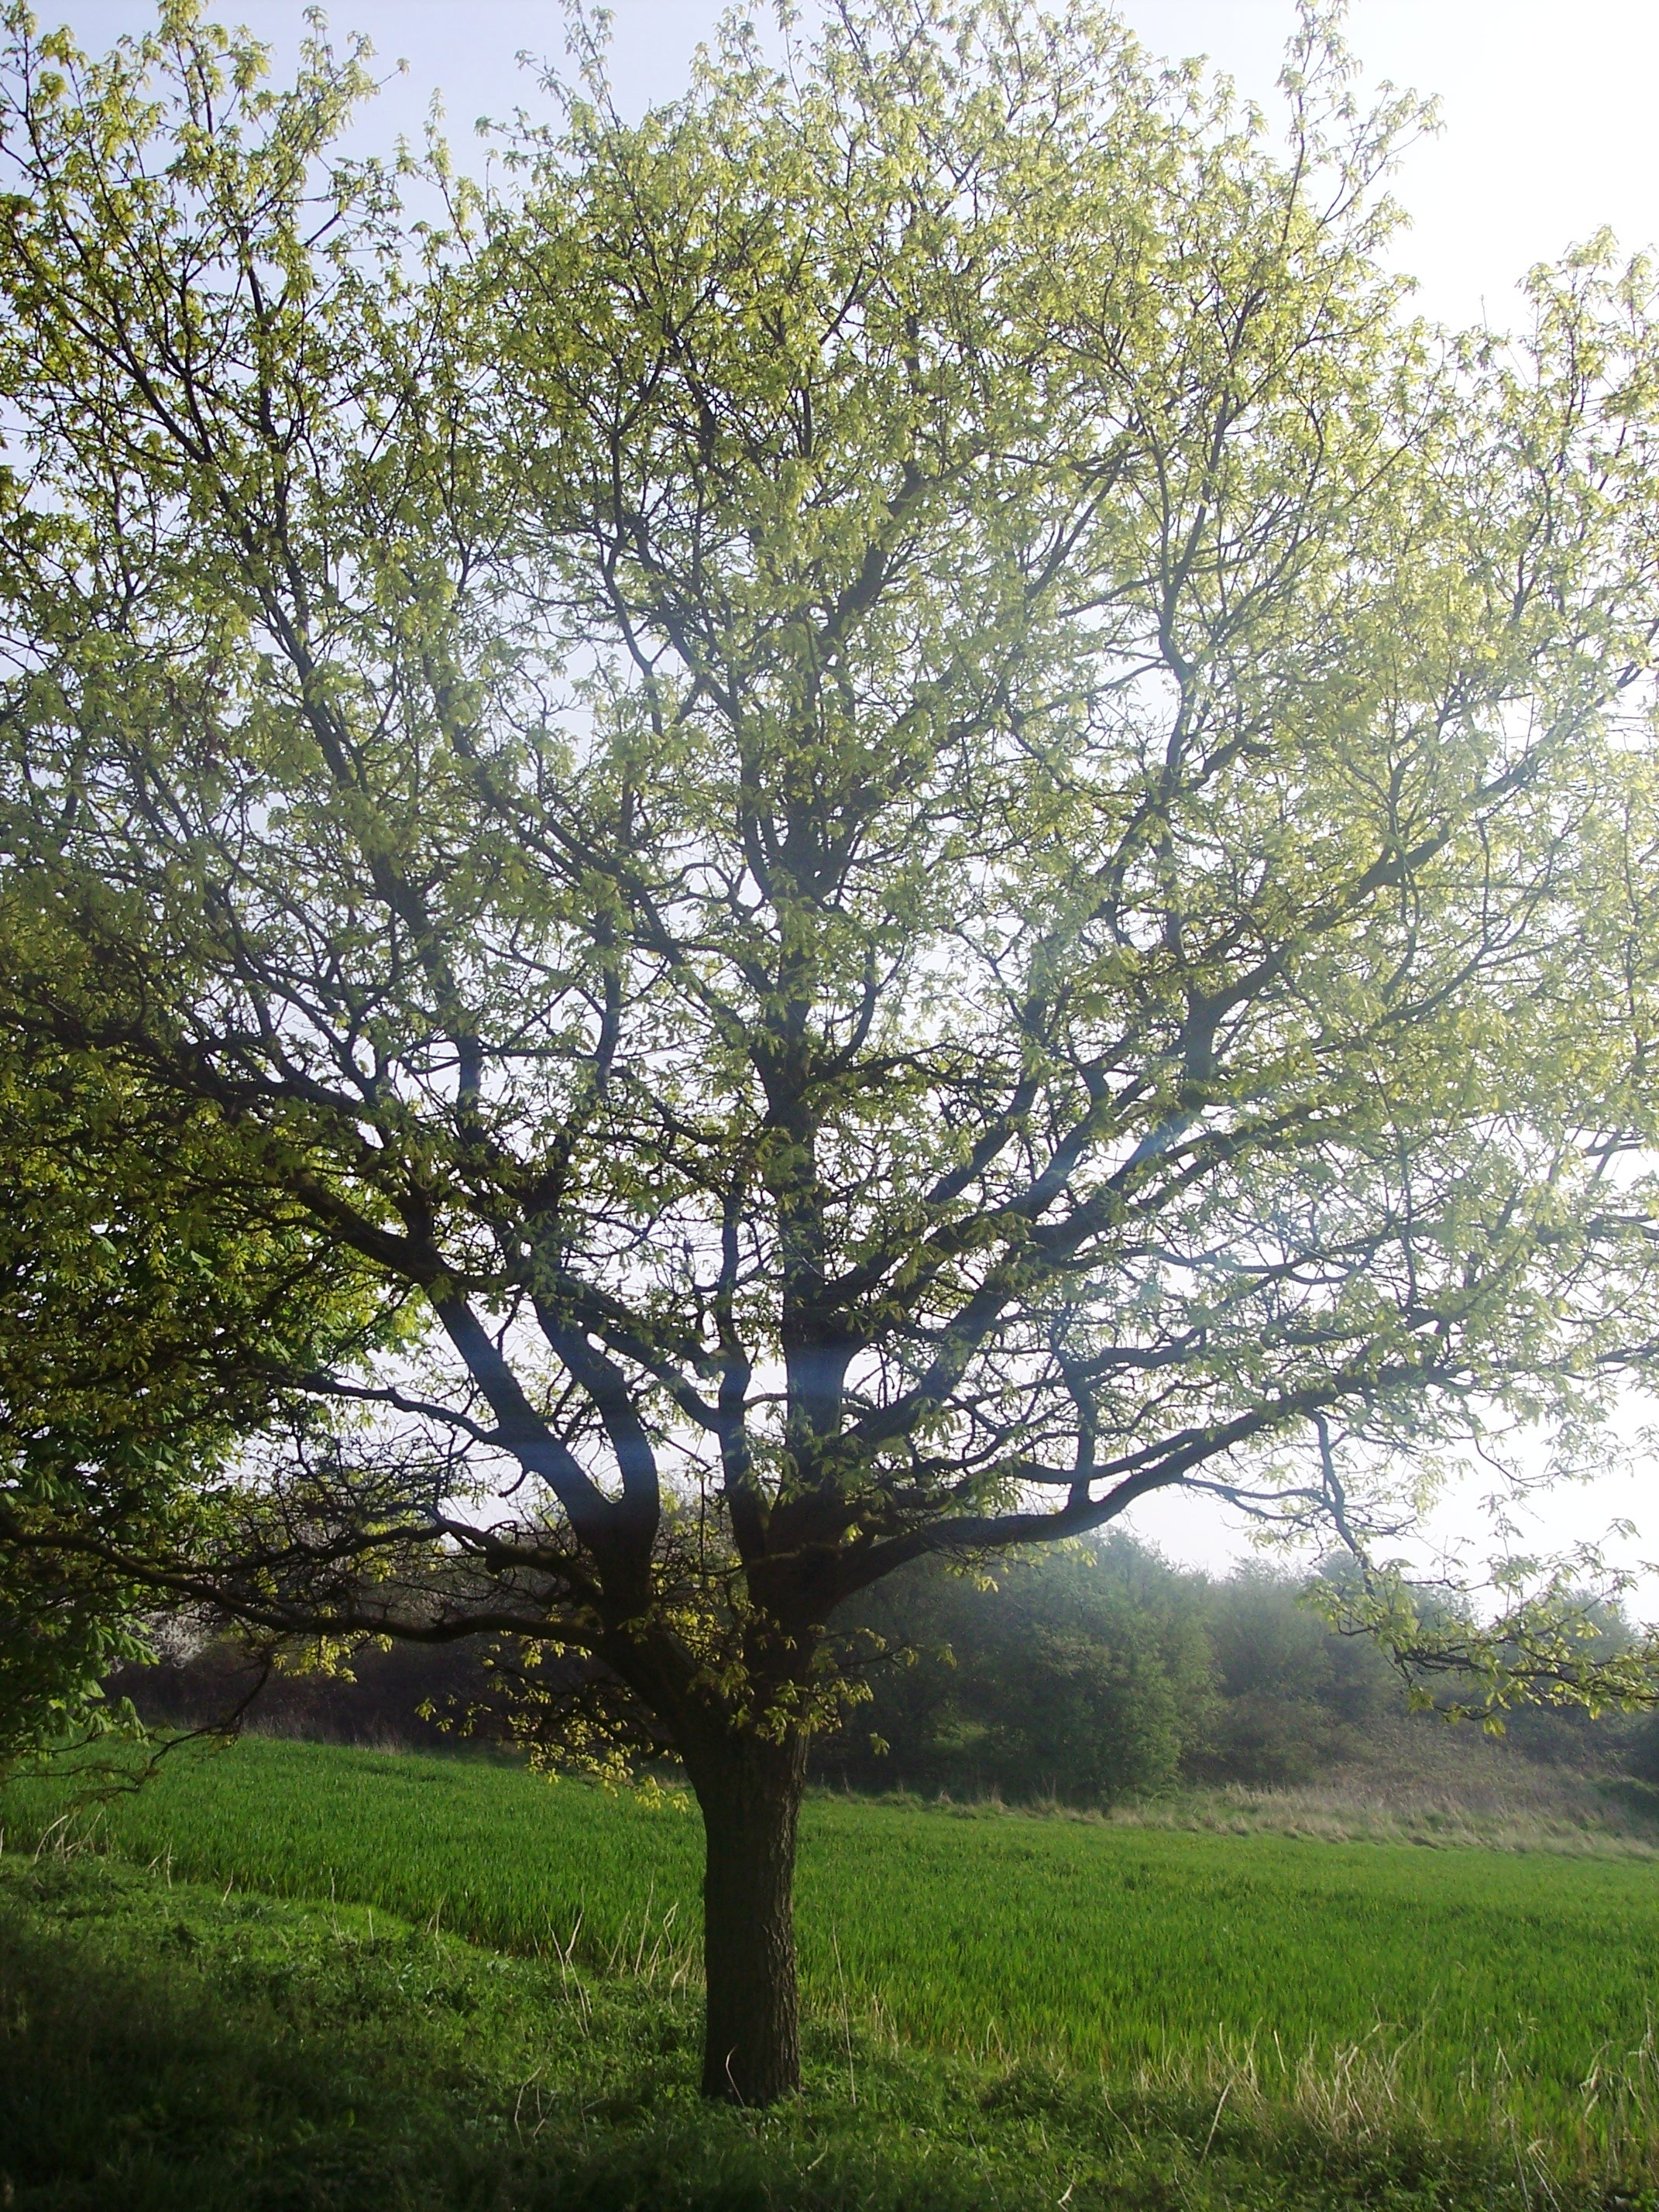 This is a tree of lower ground. It can reach 25 - 30 metres, however its diameter is less than that of the Sycamore. It differs from Sycamore in having reddish brown buds pressed close to the twig and sharply pointed lobed leaves. The bright yellow/green flowers sit upright on the tree (pictured her...